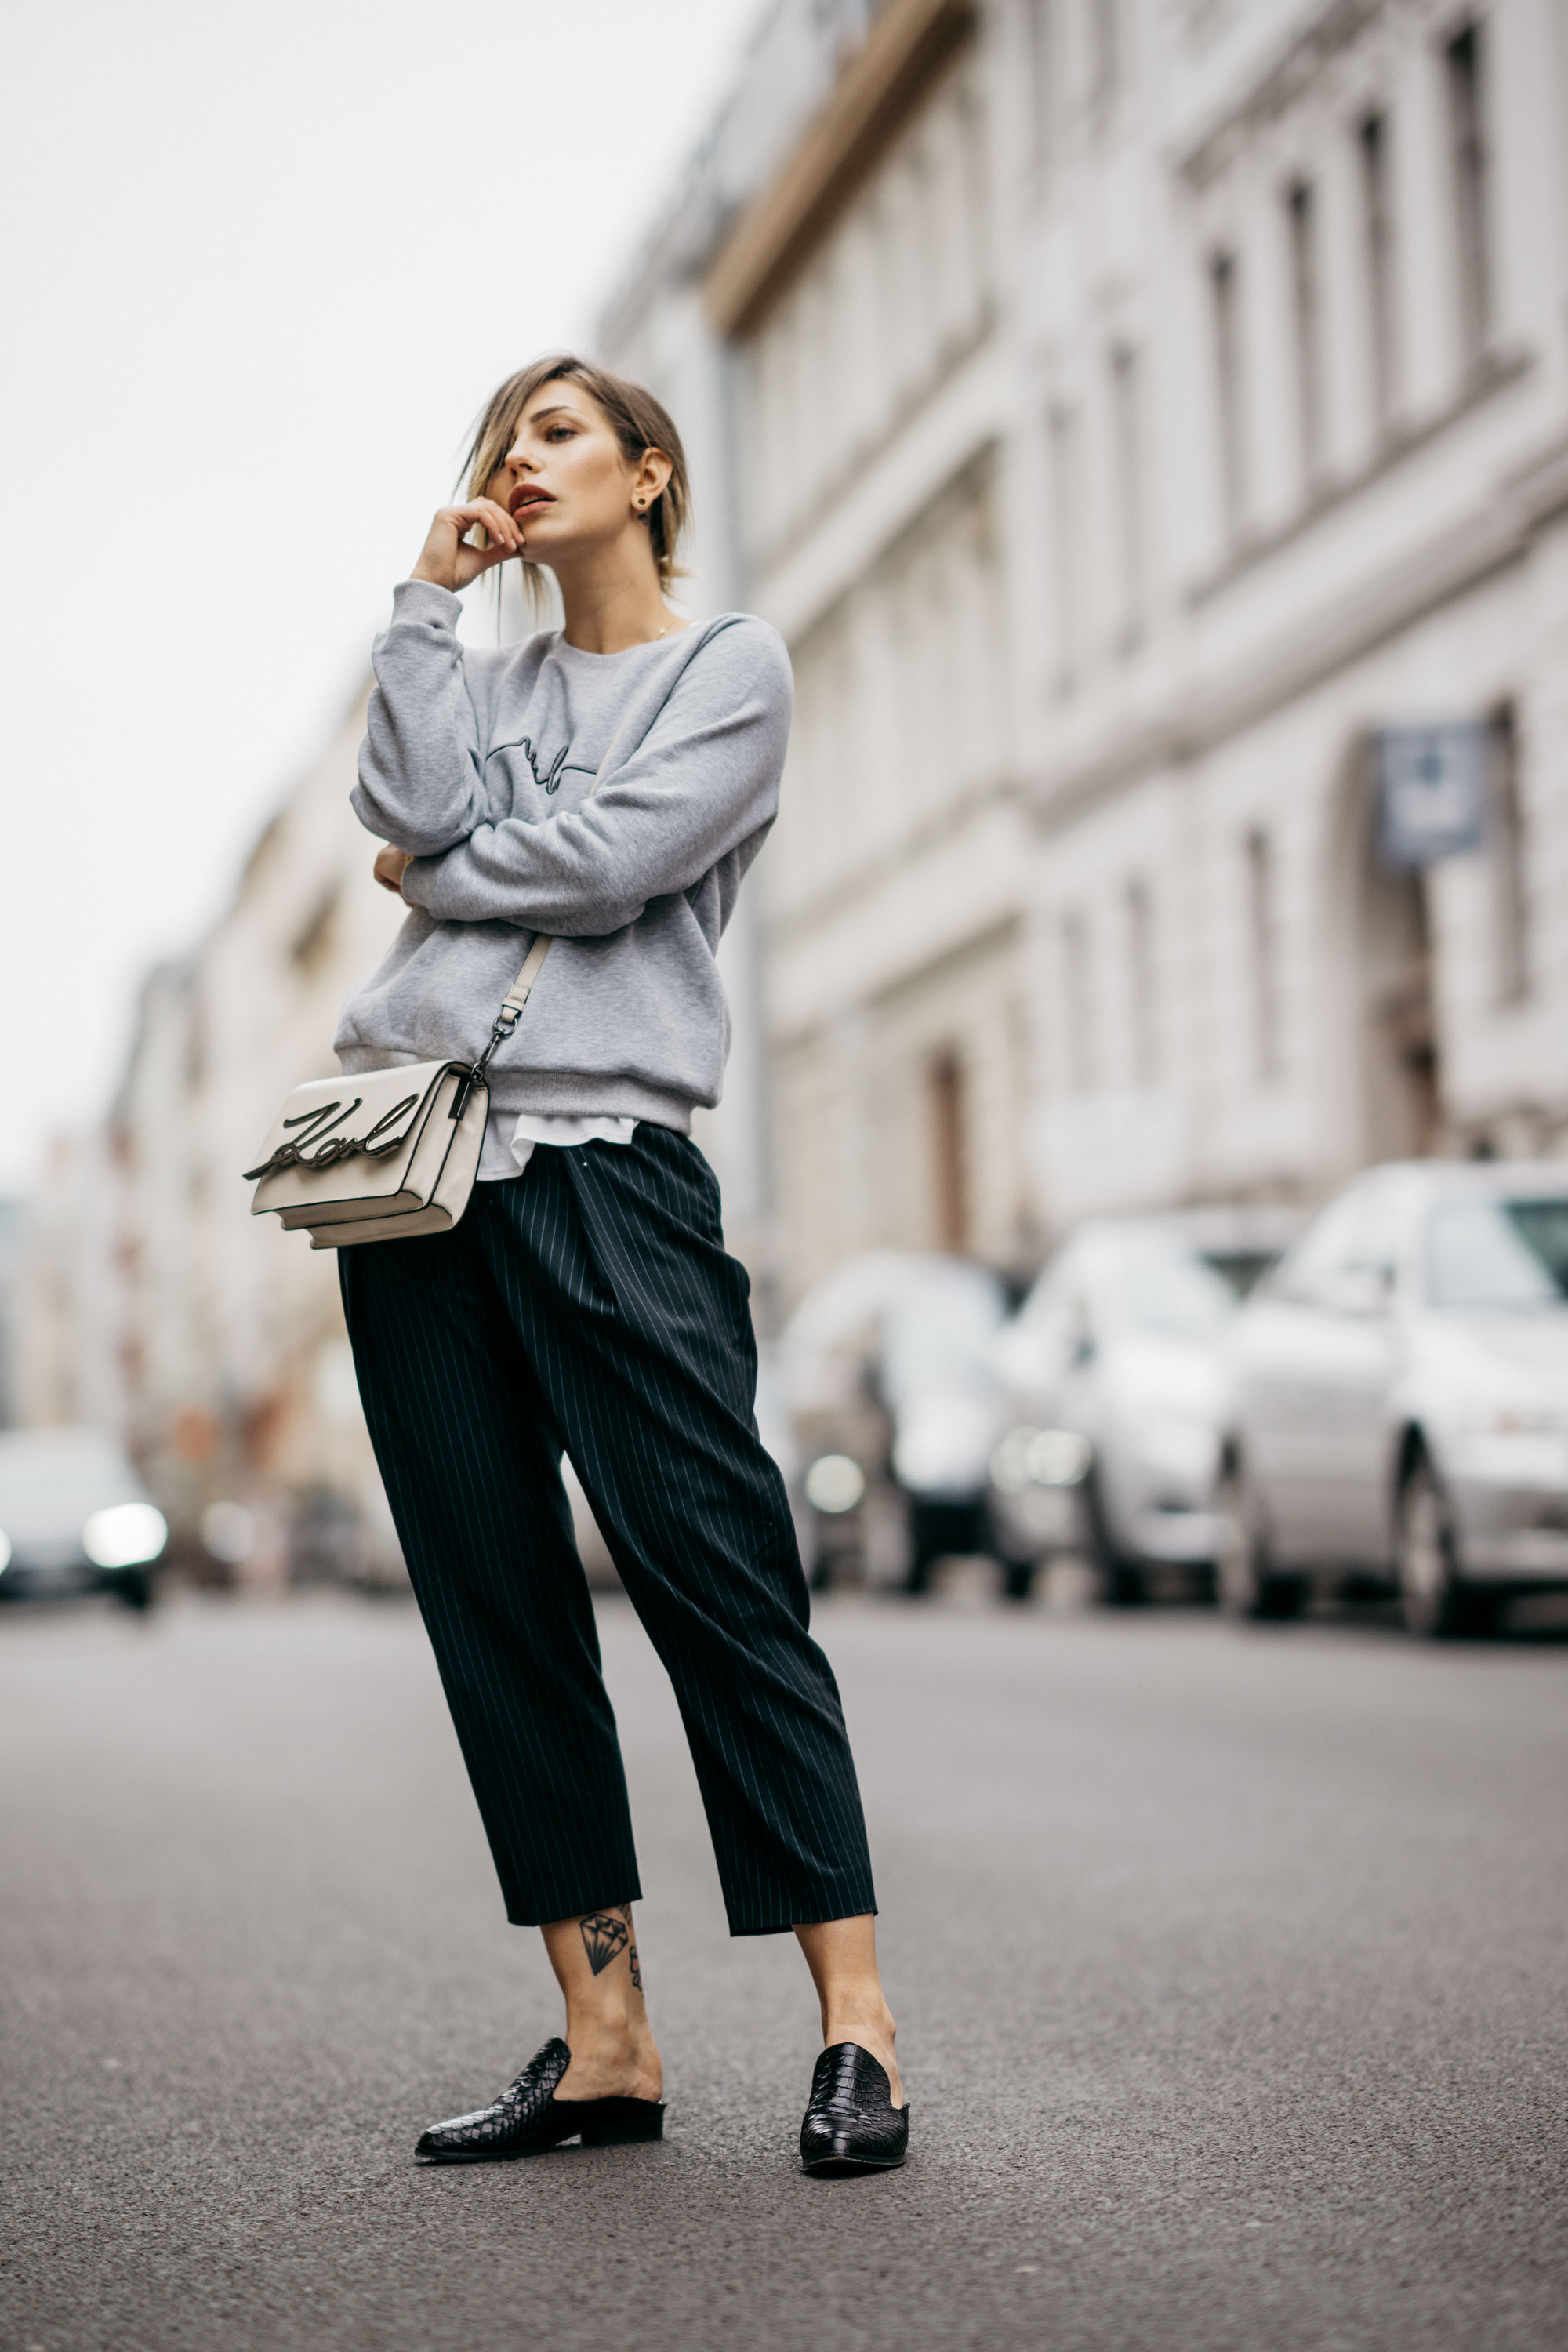 Berlin Street Style | fashion & outfit | effortless chic, sporty, elegant, business, cool, grey sweater, Karl Lagerfeld bag